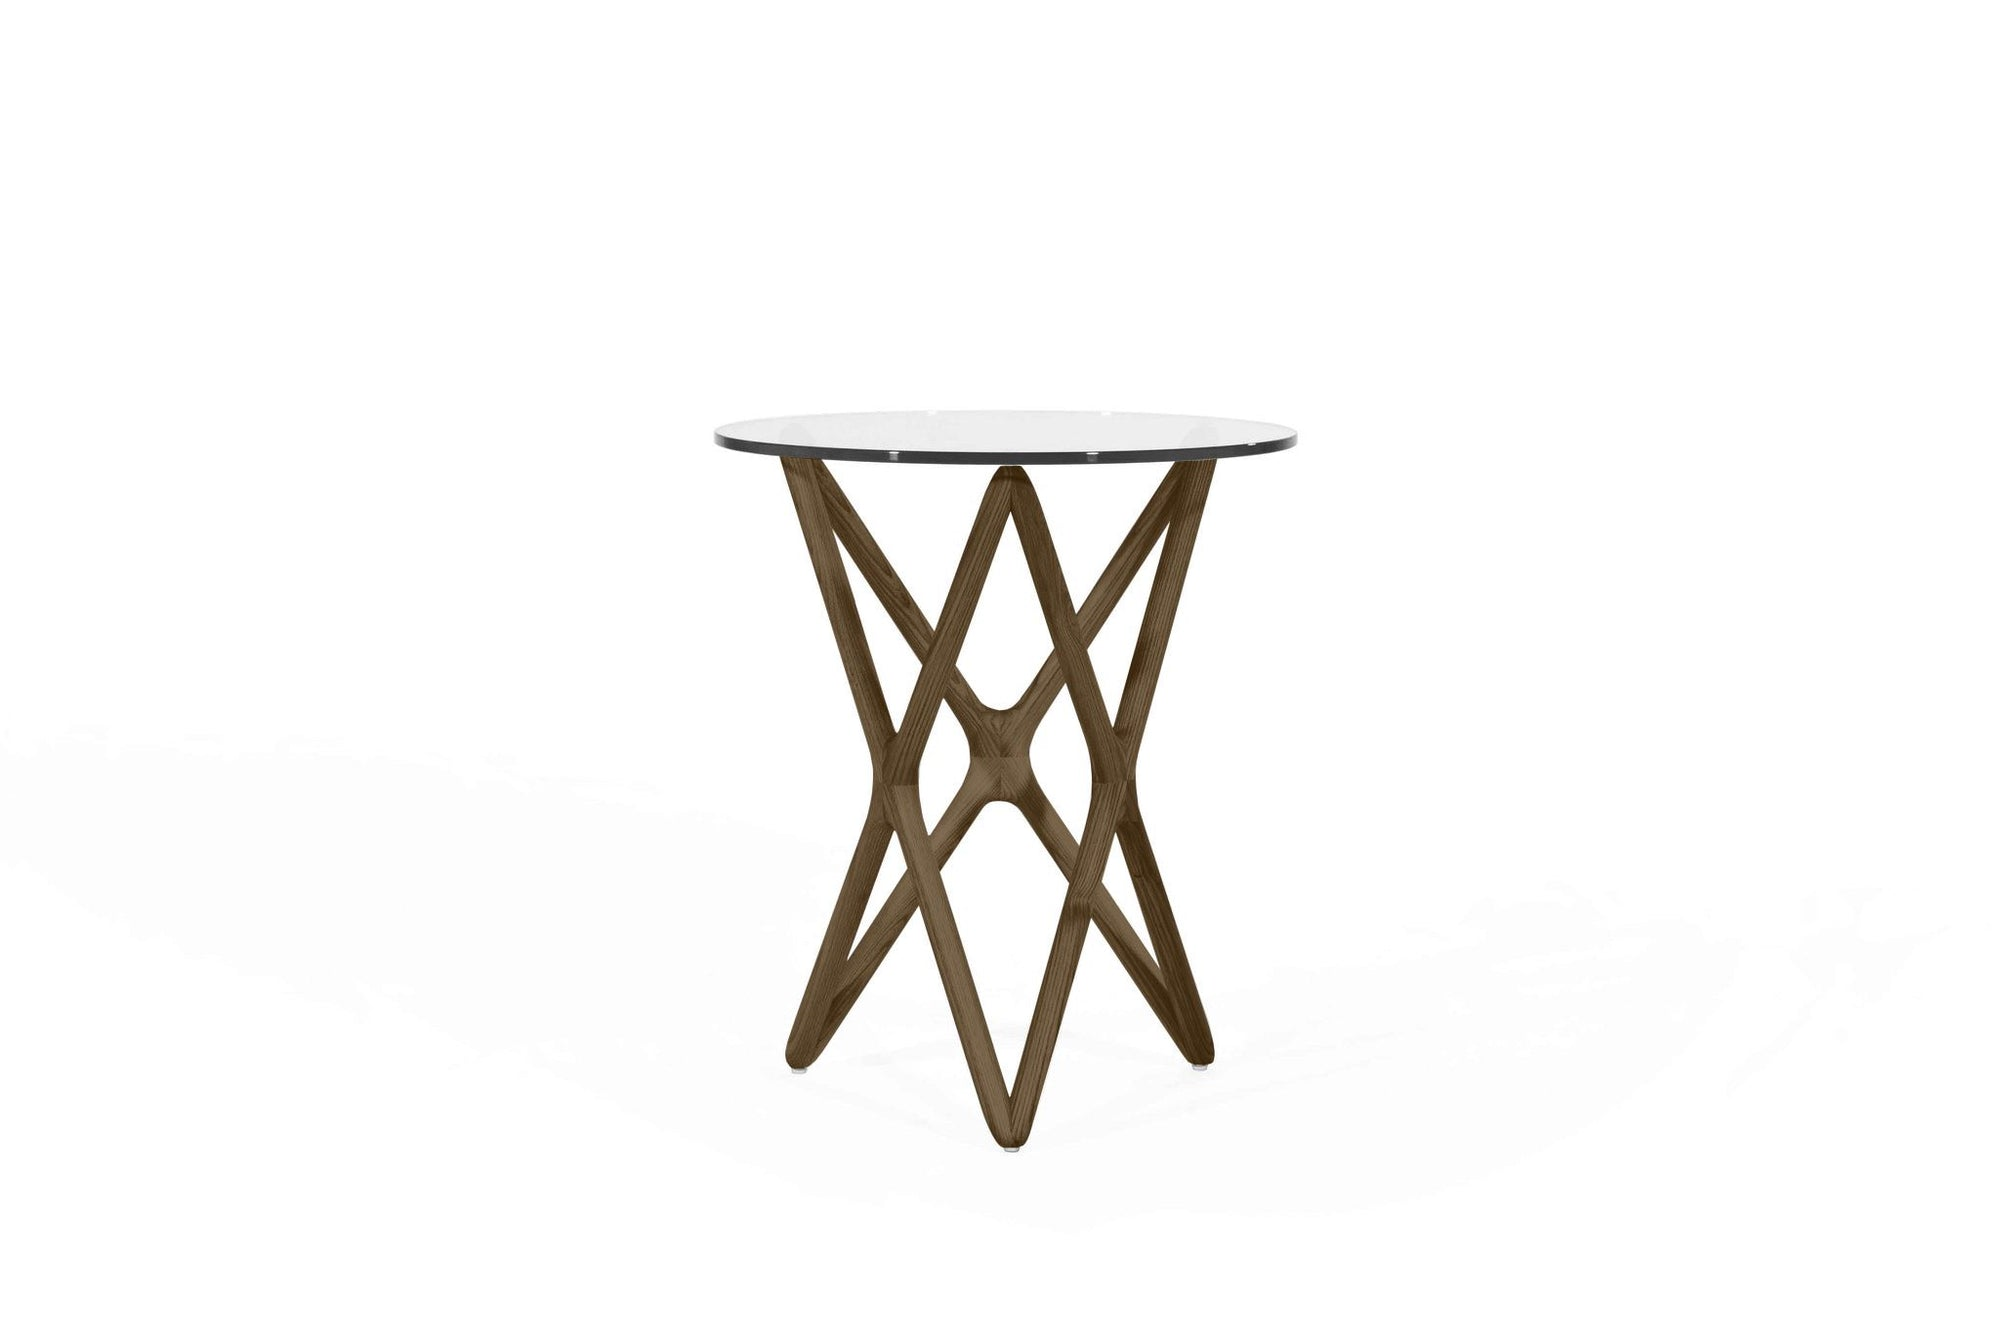 Sean Dix Style Triple X Side Table Diameter 47cm H56cm (Glass / Walnut on Ash Frame) - Nathan Rhodes Design